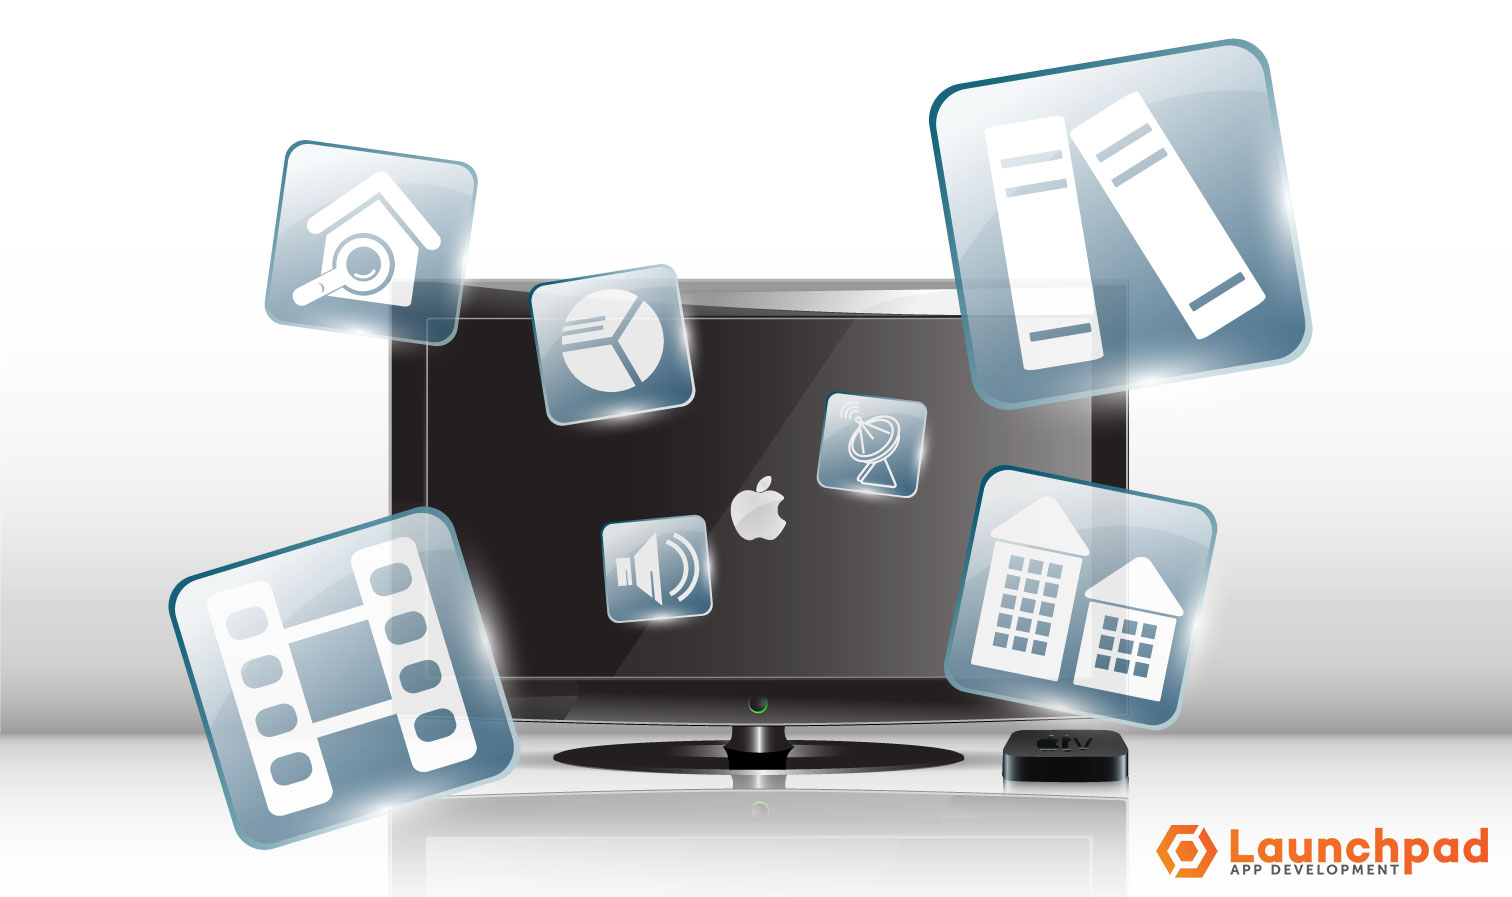 Are Apps The Future of TV? - Launchpad App Development